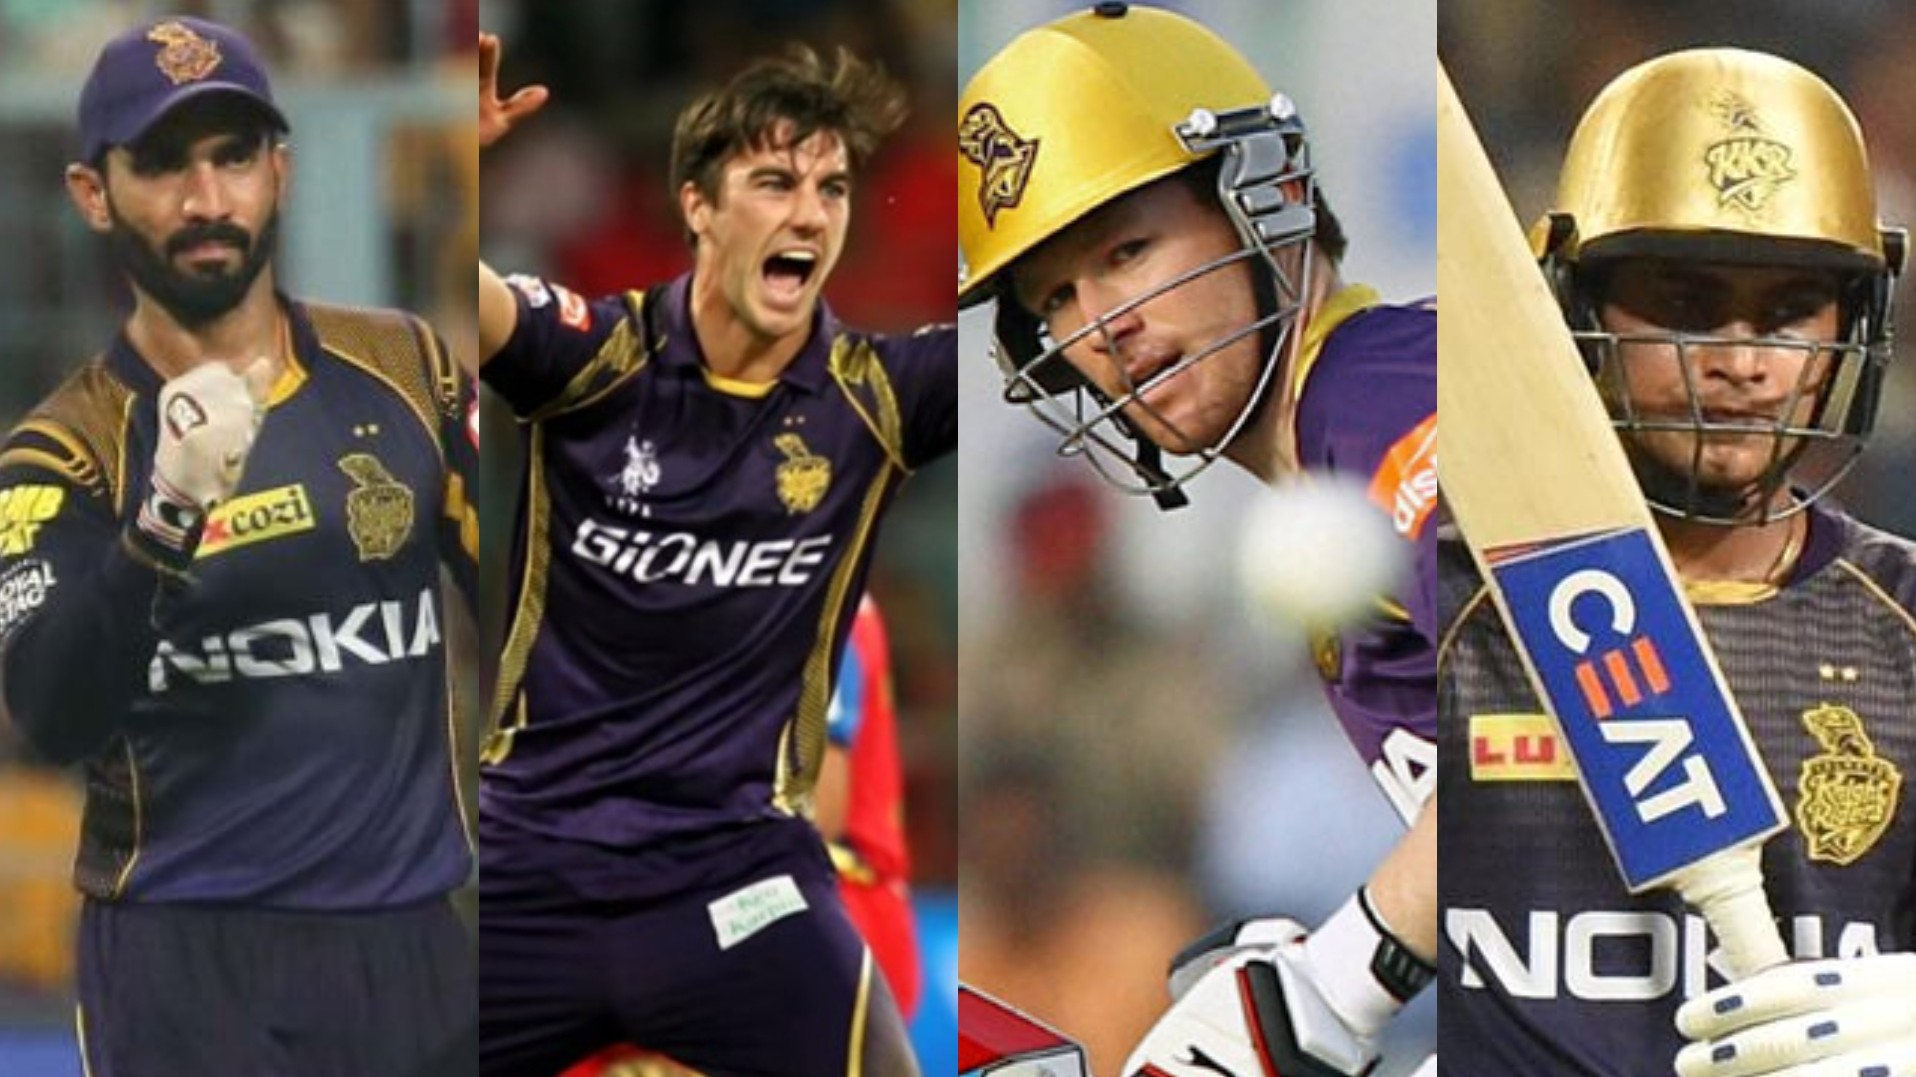 IPL 2020: COC Predicted Best Kolkata Knight Riders (KKR) Playing XI for upcoming season